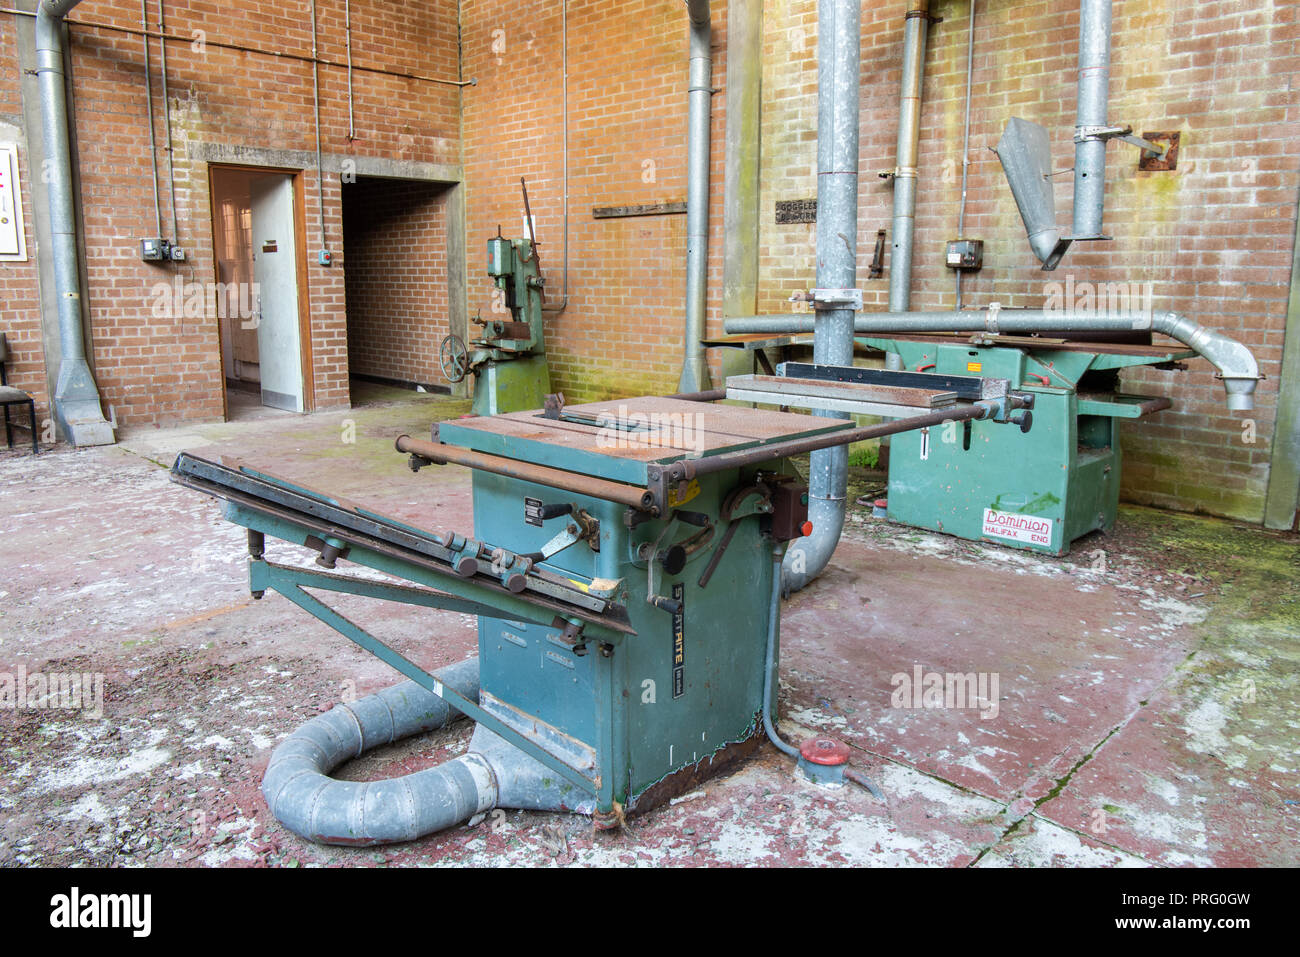 Bench Saw In An Abandoned Woodworking Workshop Stock Photo Alamy